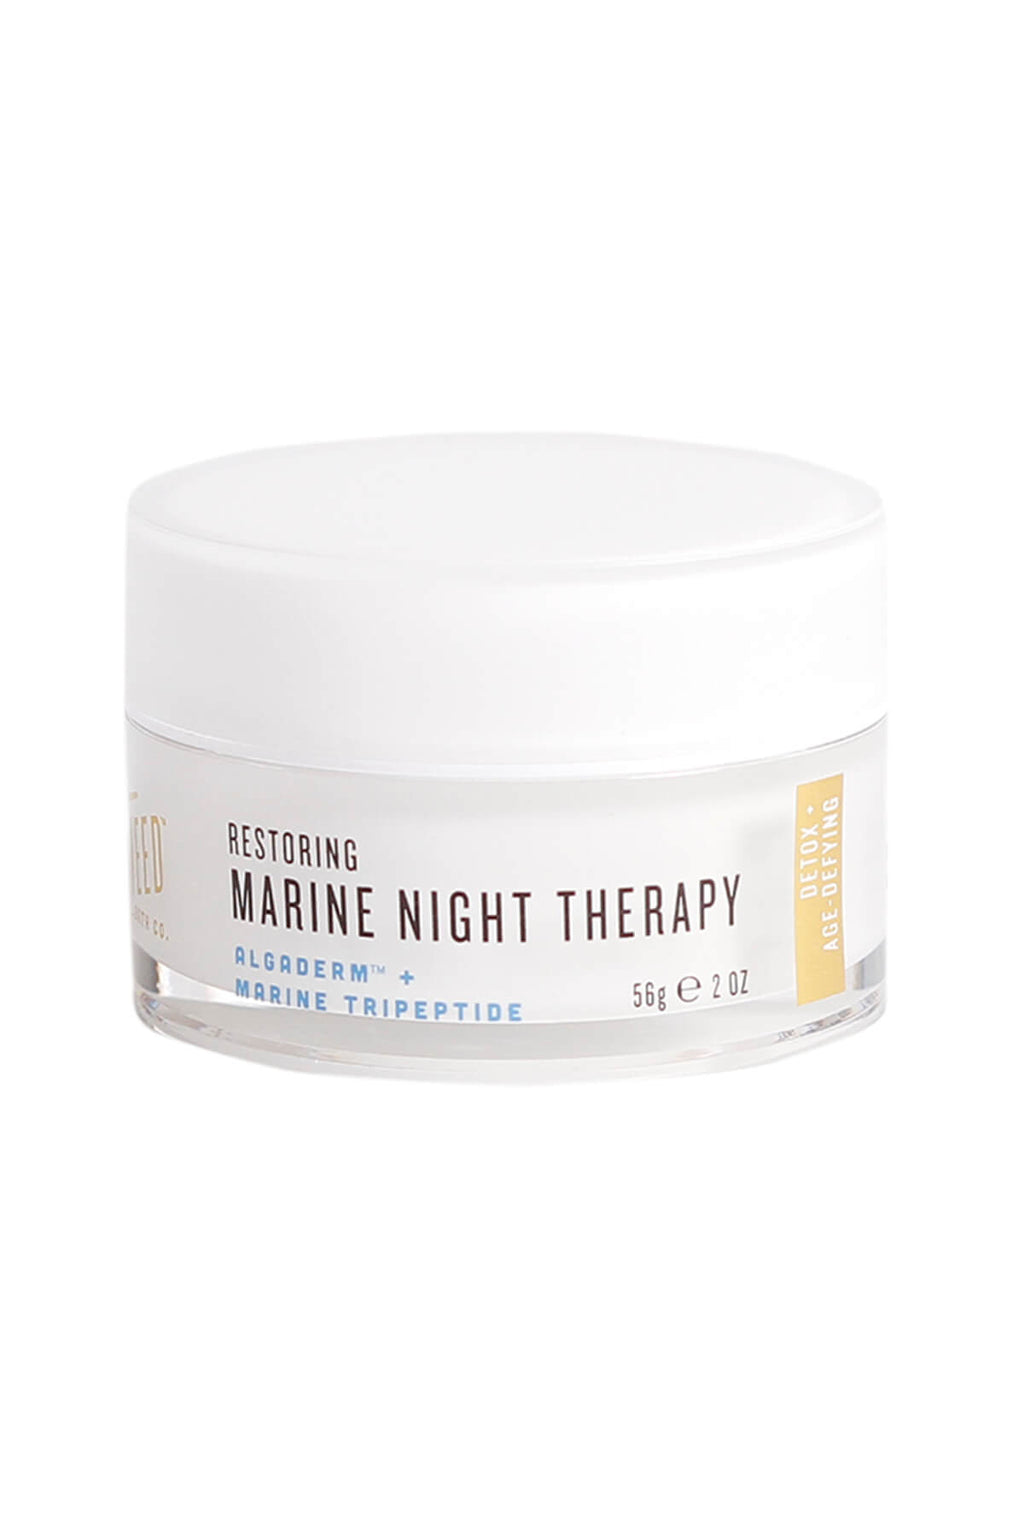 Front of Restoring Marine Night Therapy Jar